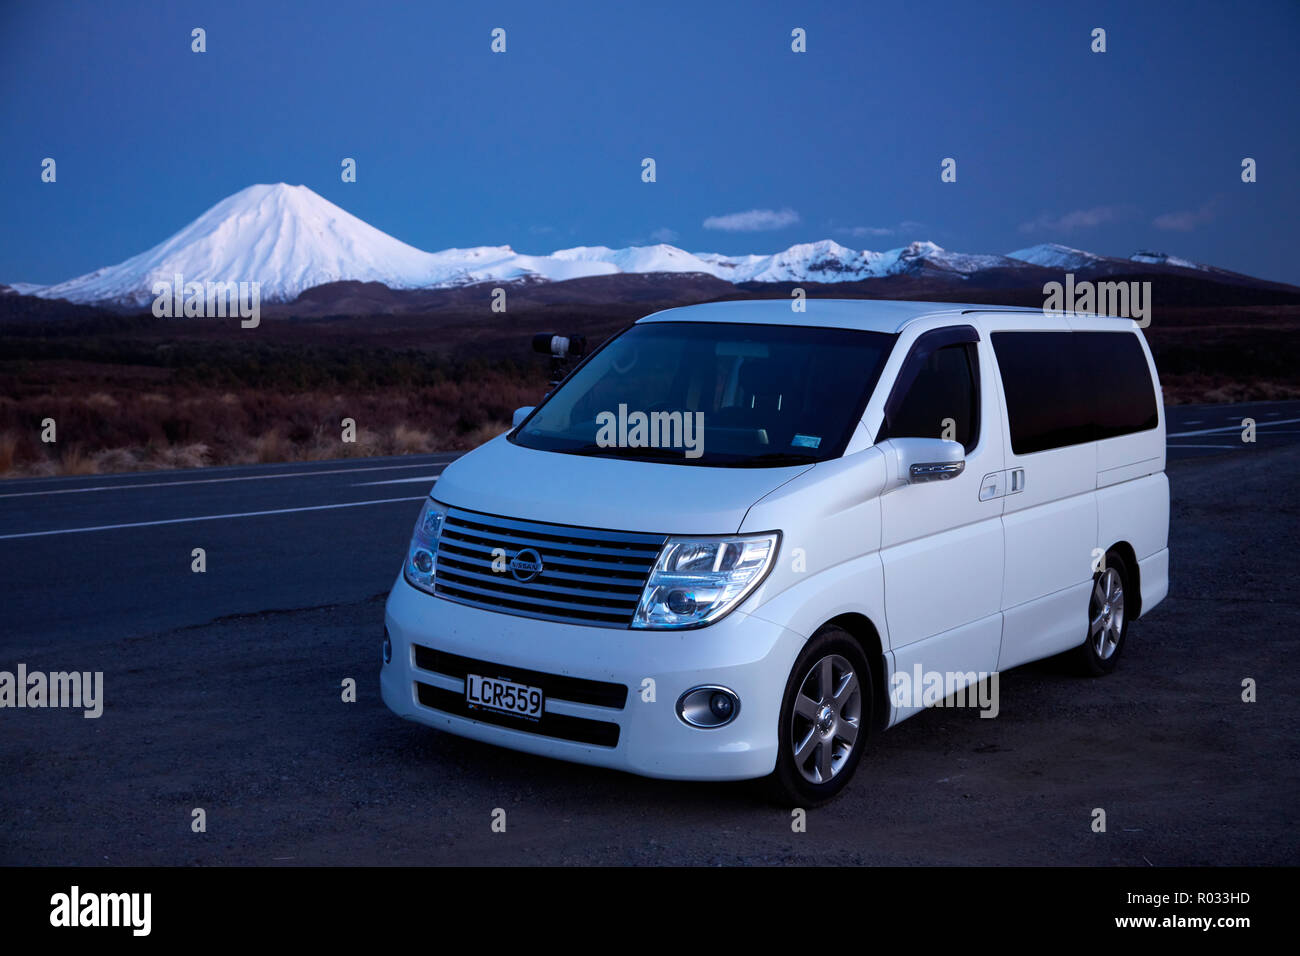 Van on Desert Road and Mt Ngauruhoe, Tongariro National Park, Central Plateau, North Island, New Zealand - Stock Image